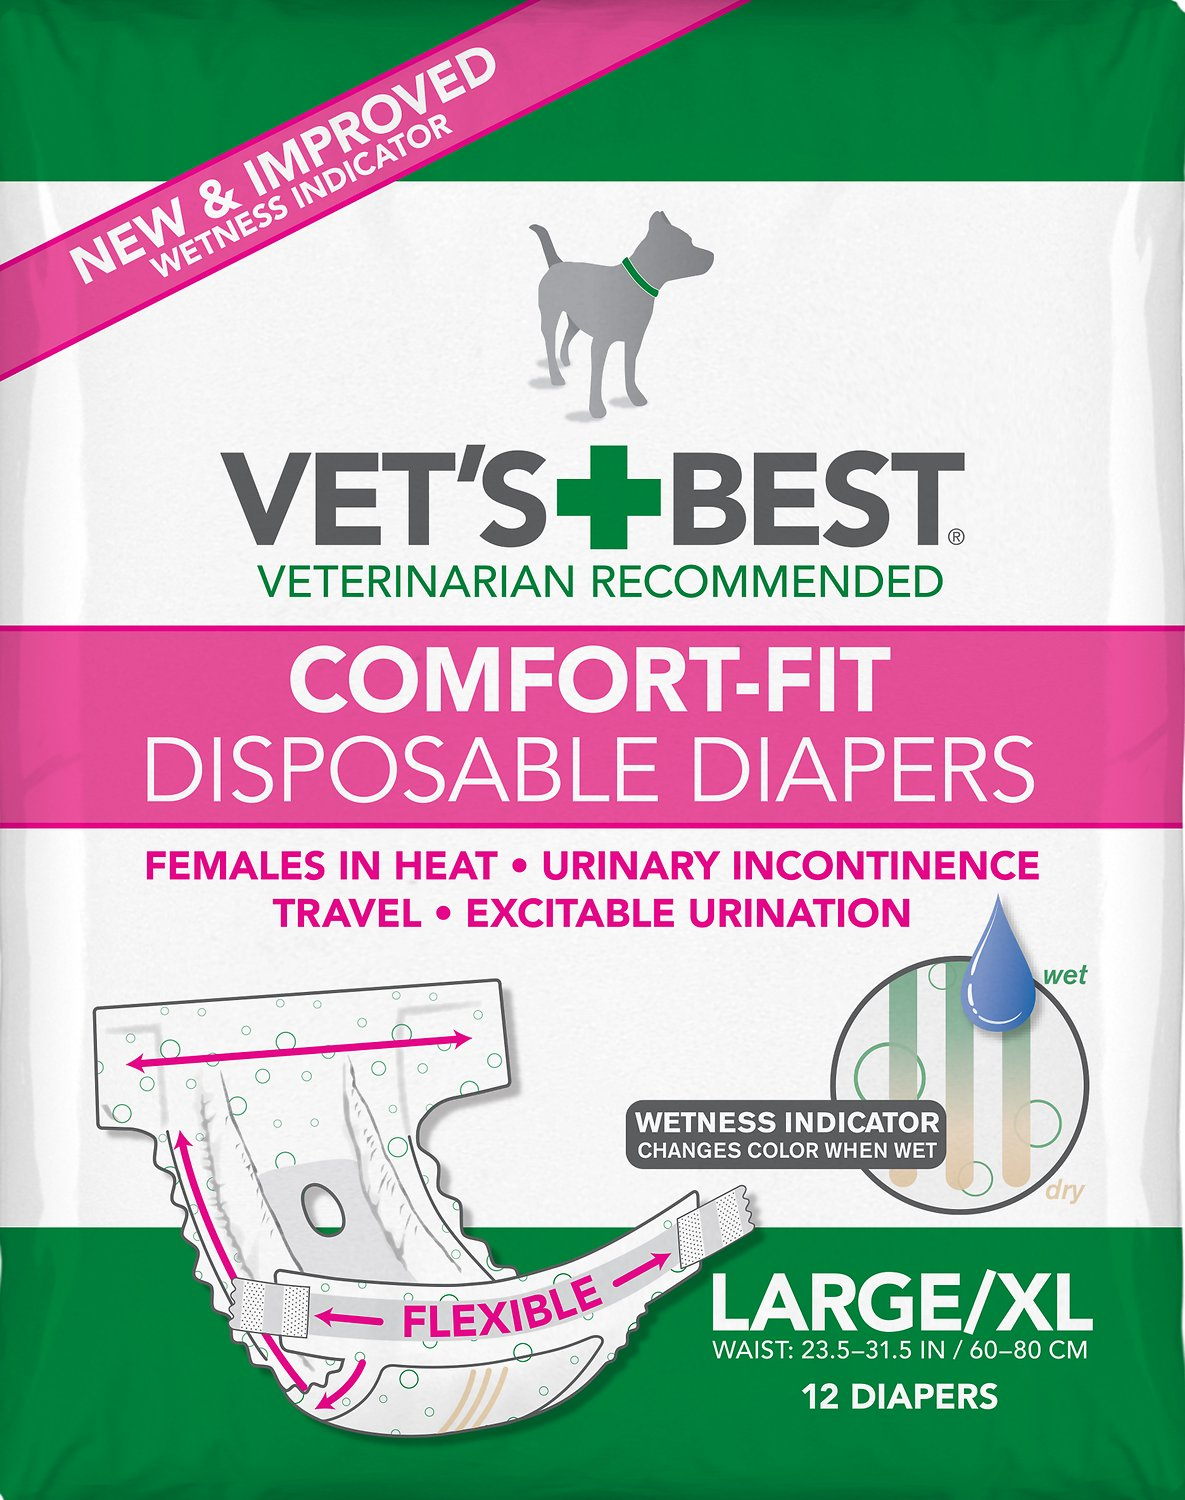 Vet\u0027s Best Comfort-Fit Disposable Diapers for Female Dogs Dogs, Large/X